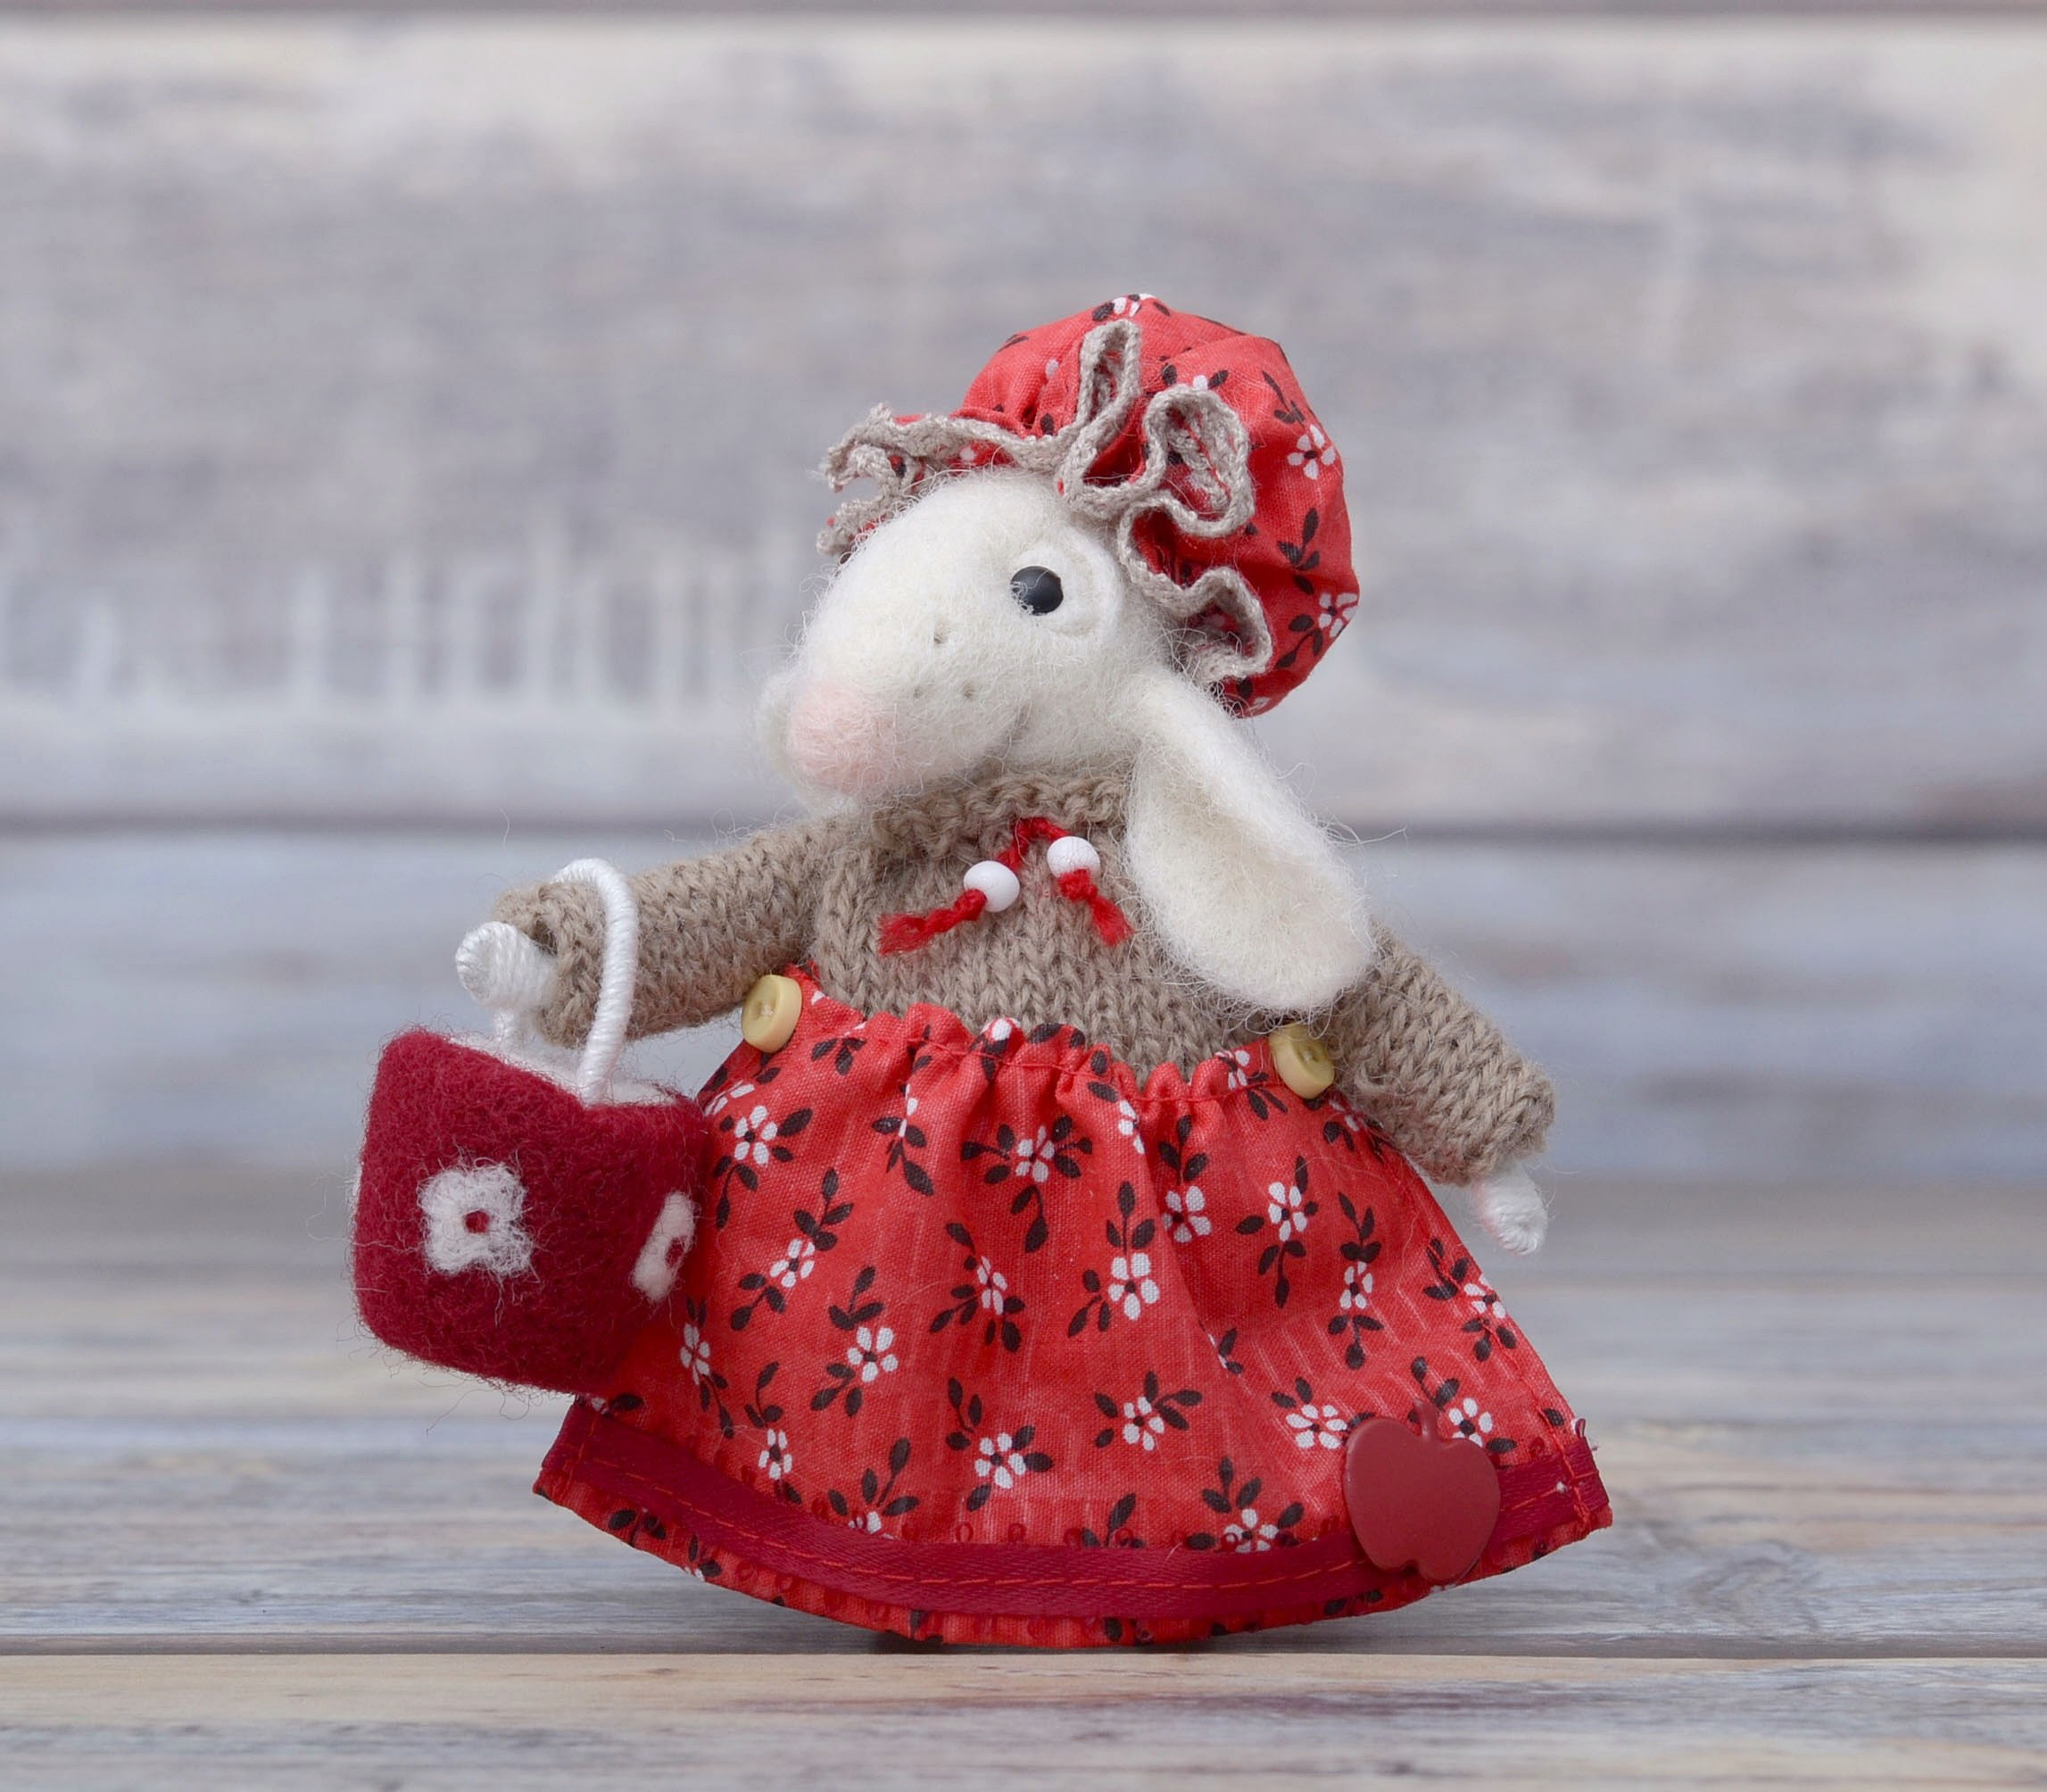 White Mouse with Basket Needle Felting Mice Happy Birthday Gift Felted Animal Wool Rat Soft Sculpture Fiber Art by NeighborKitty